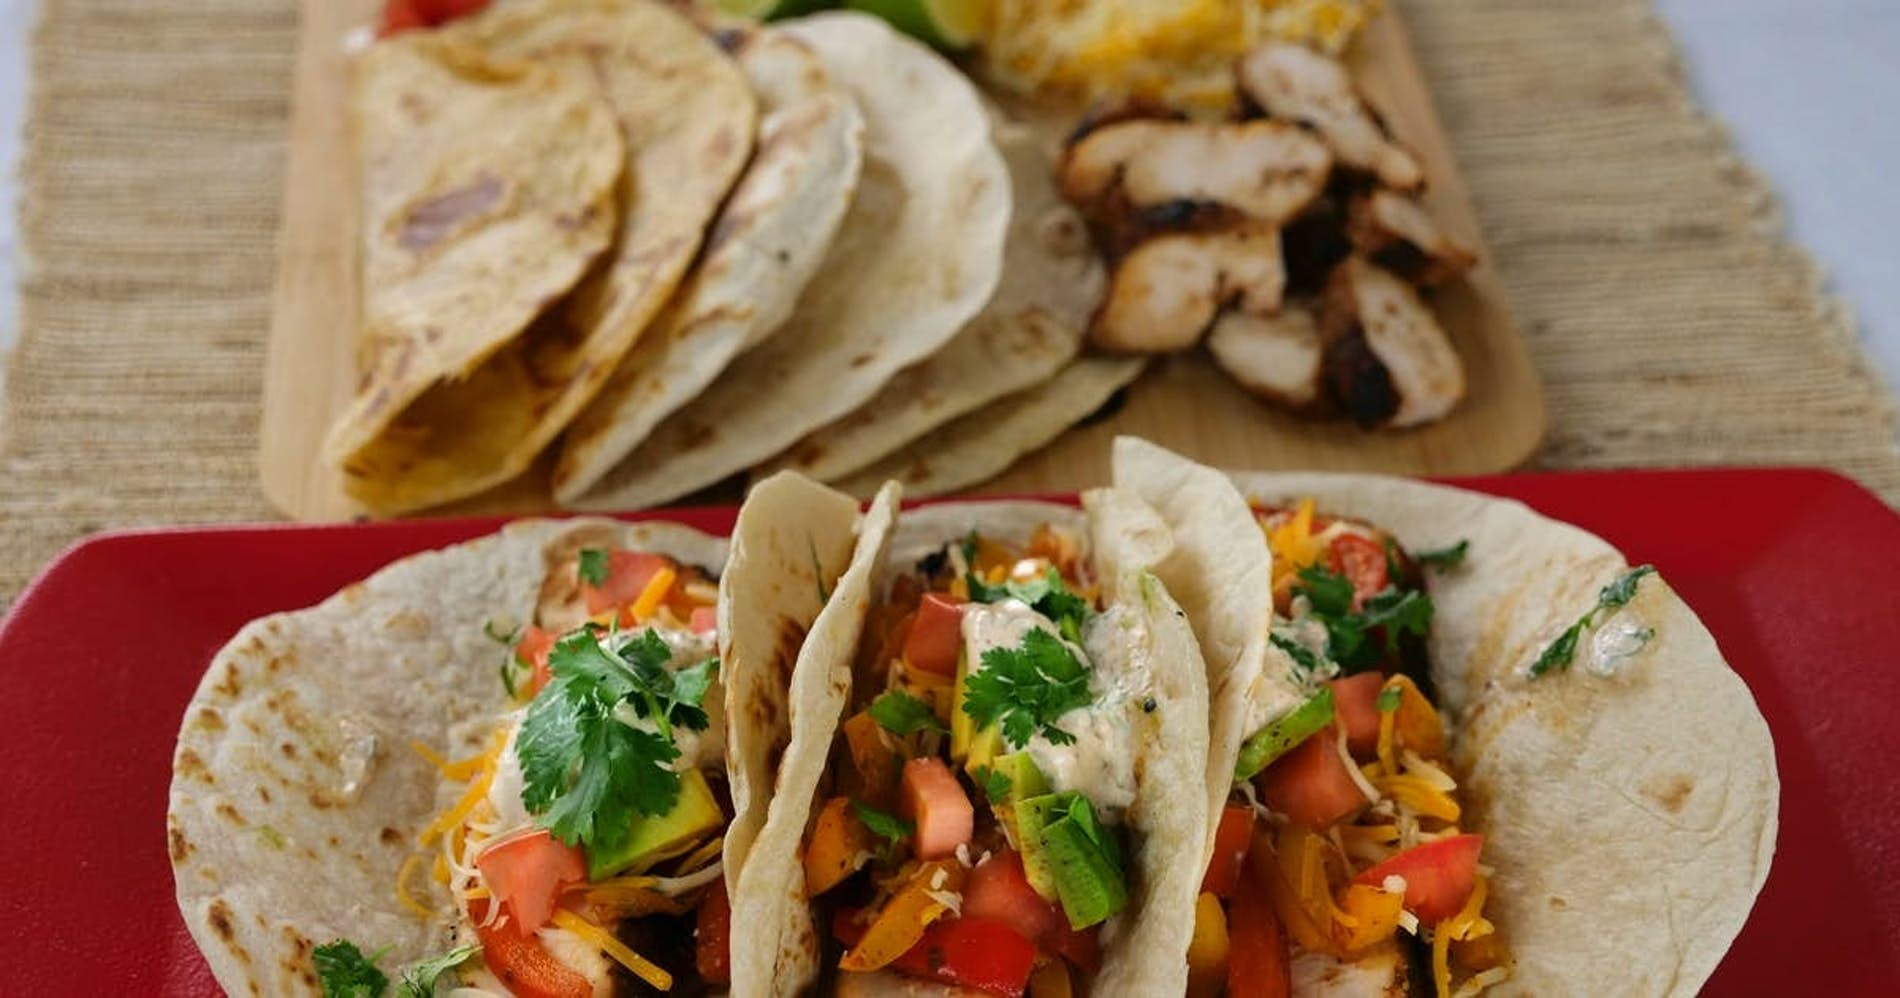 Spicy Chicken Fajitas with Chipotle Lime Crema